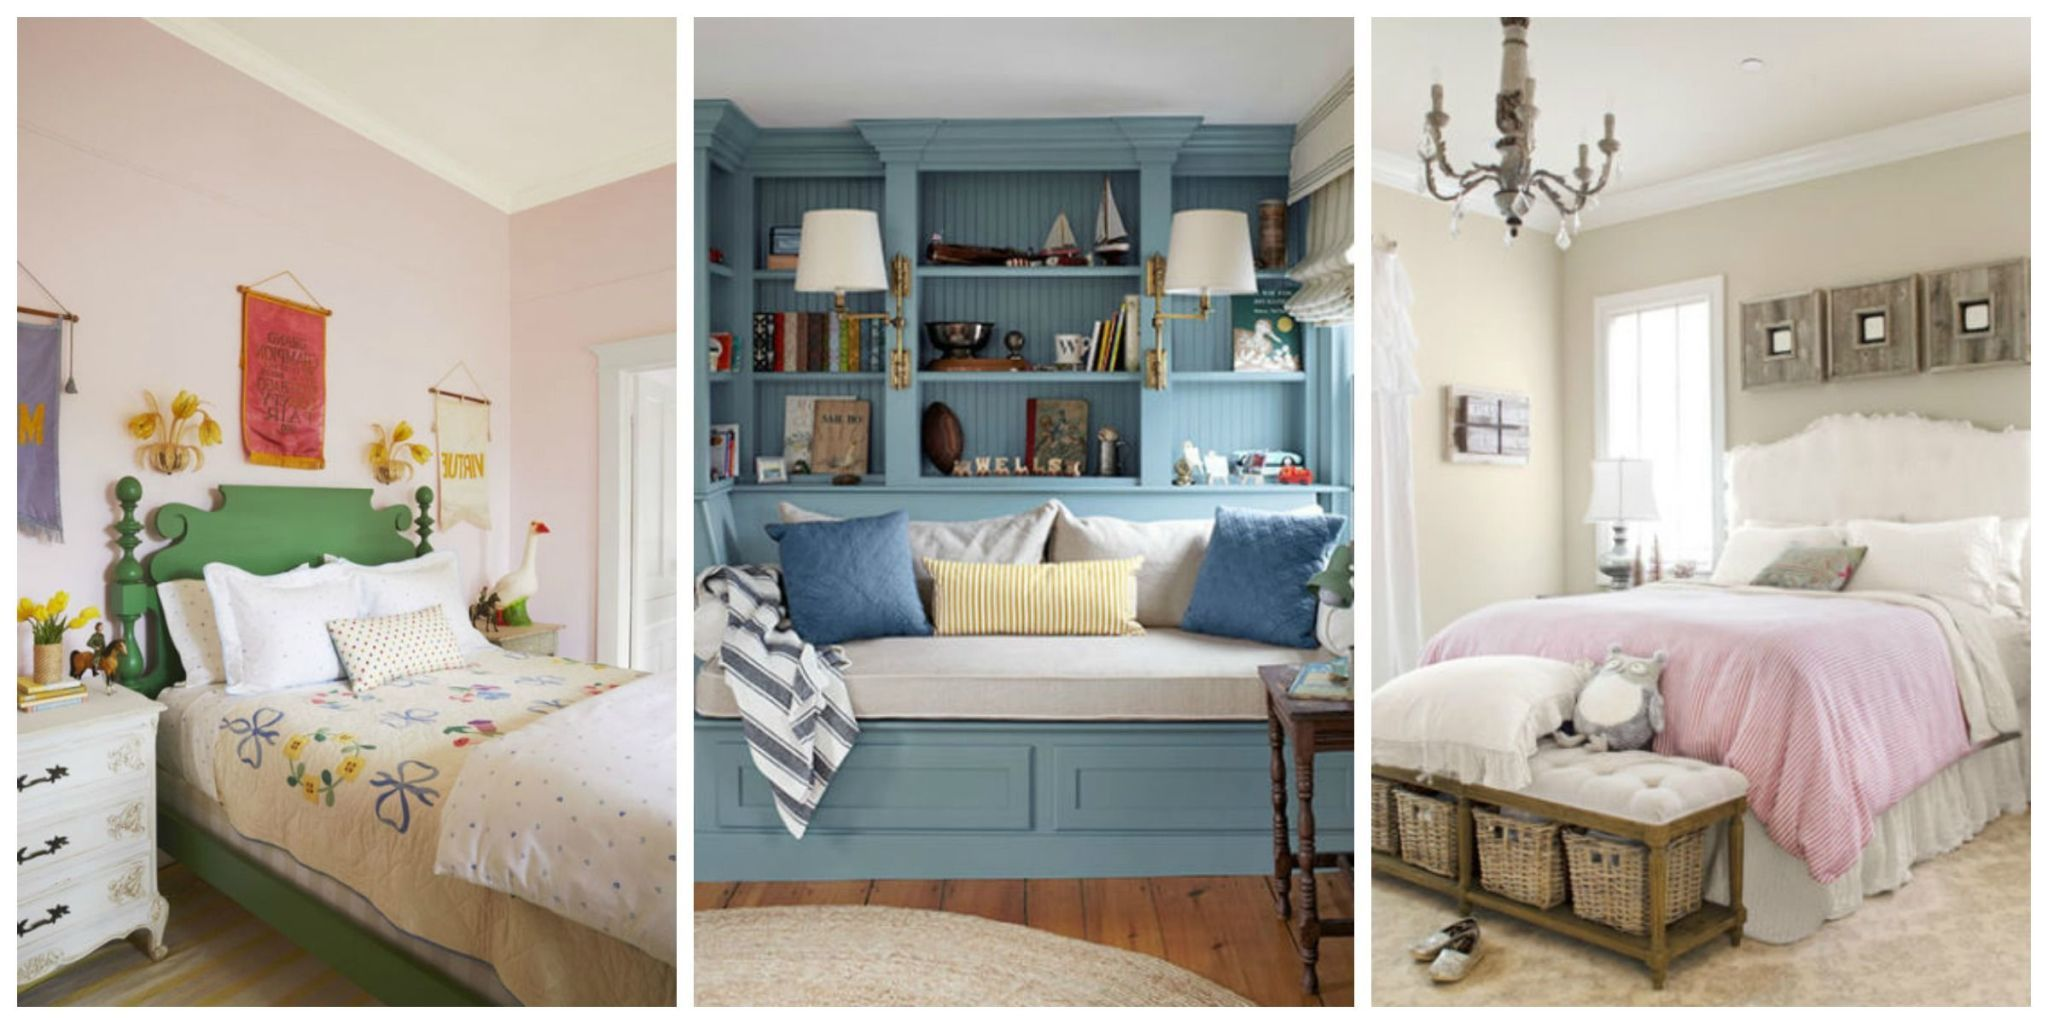 Colorful accents and sophisticated antique finds do have a place in your child\u0027s room\u2014right next to their favorite toys. & 50+ Kids Room Decor Ideas \u2013 Bedroom Design and Decorating for Kids